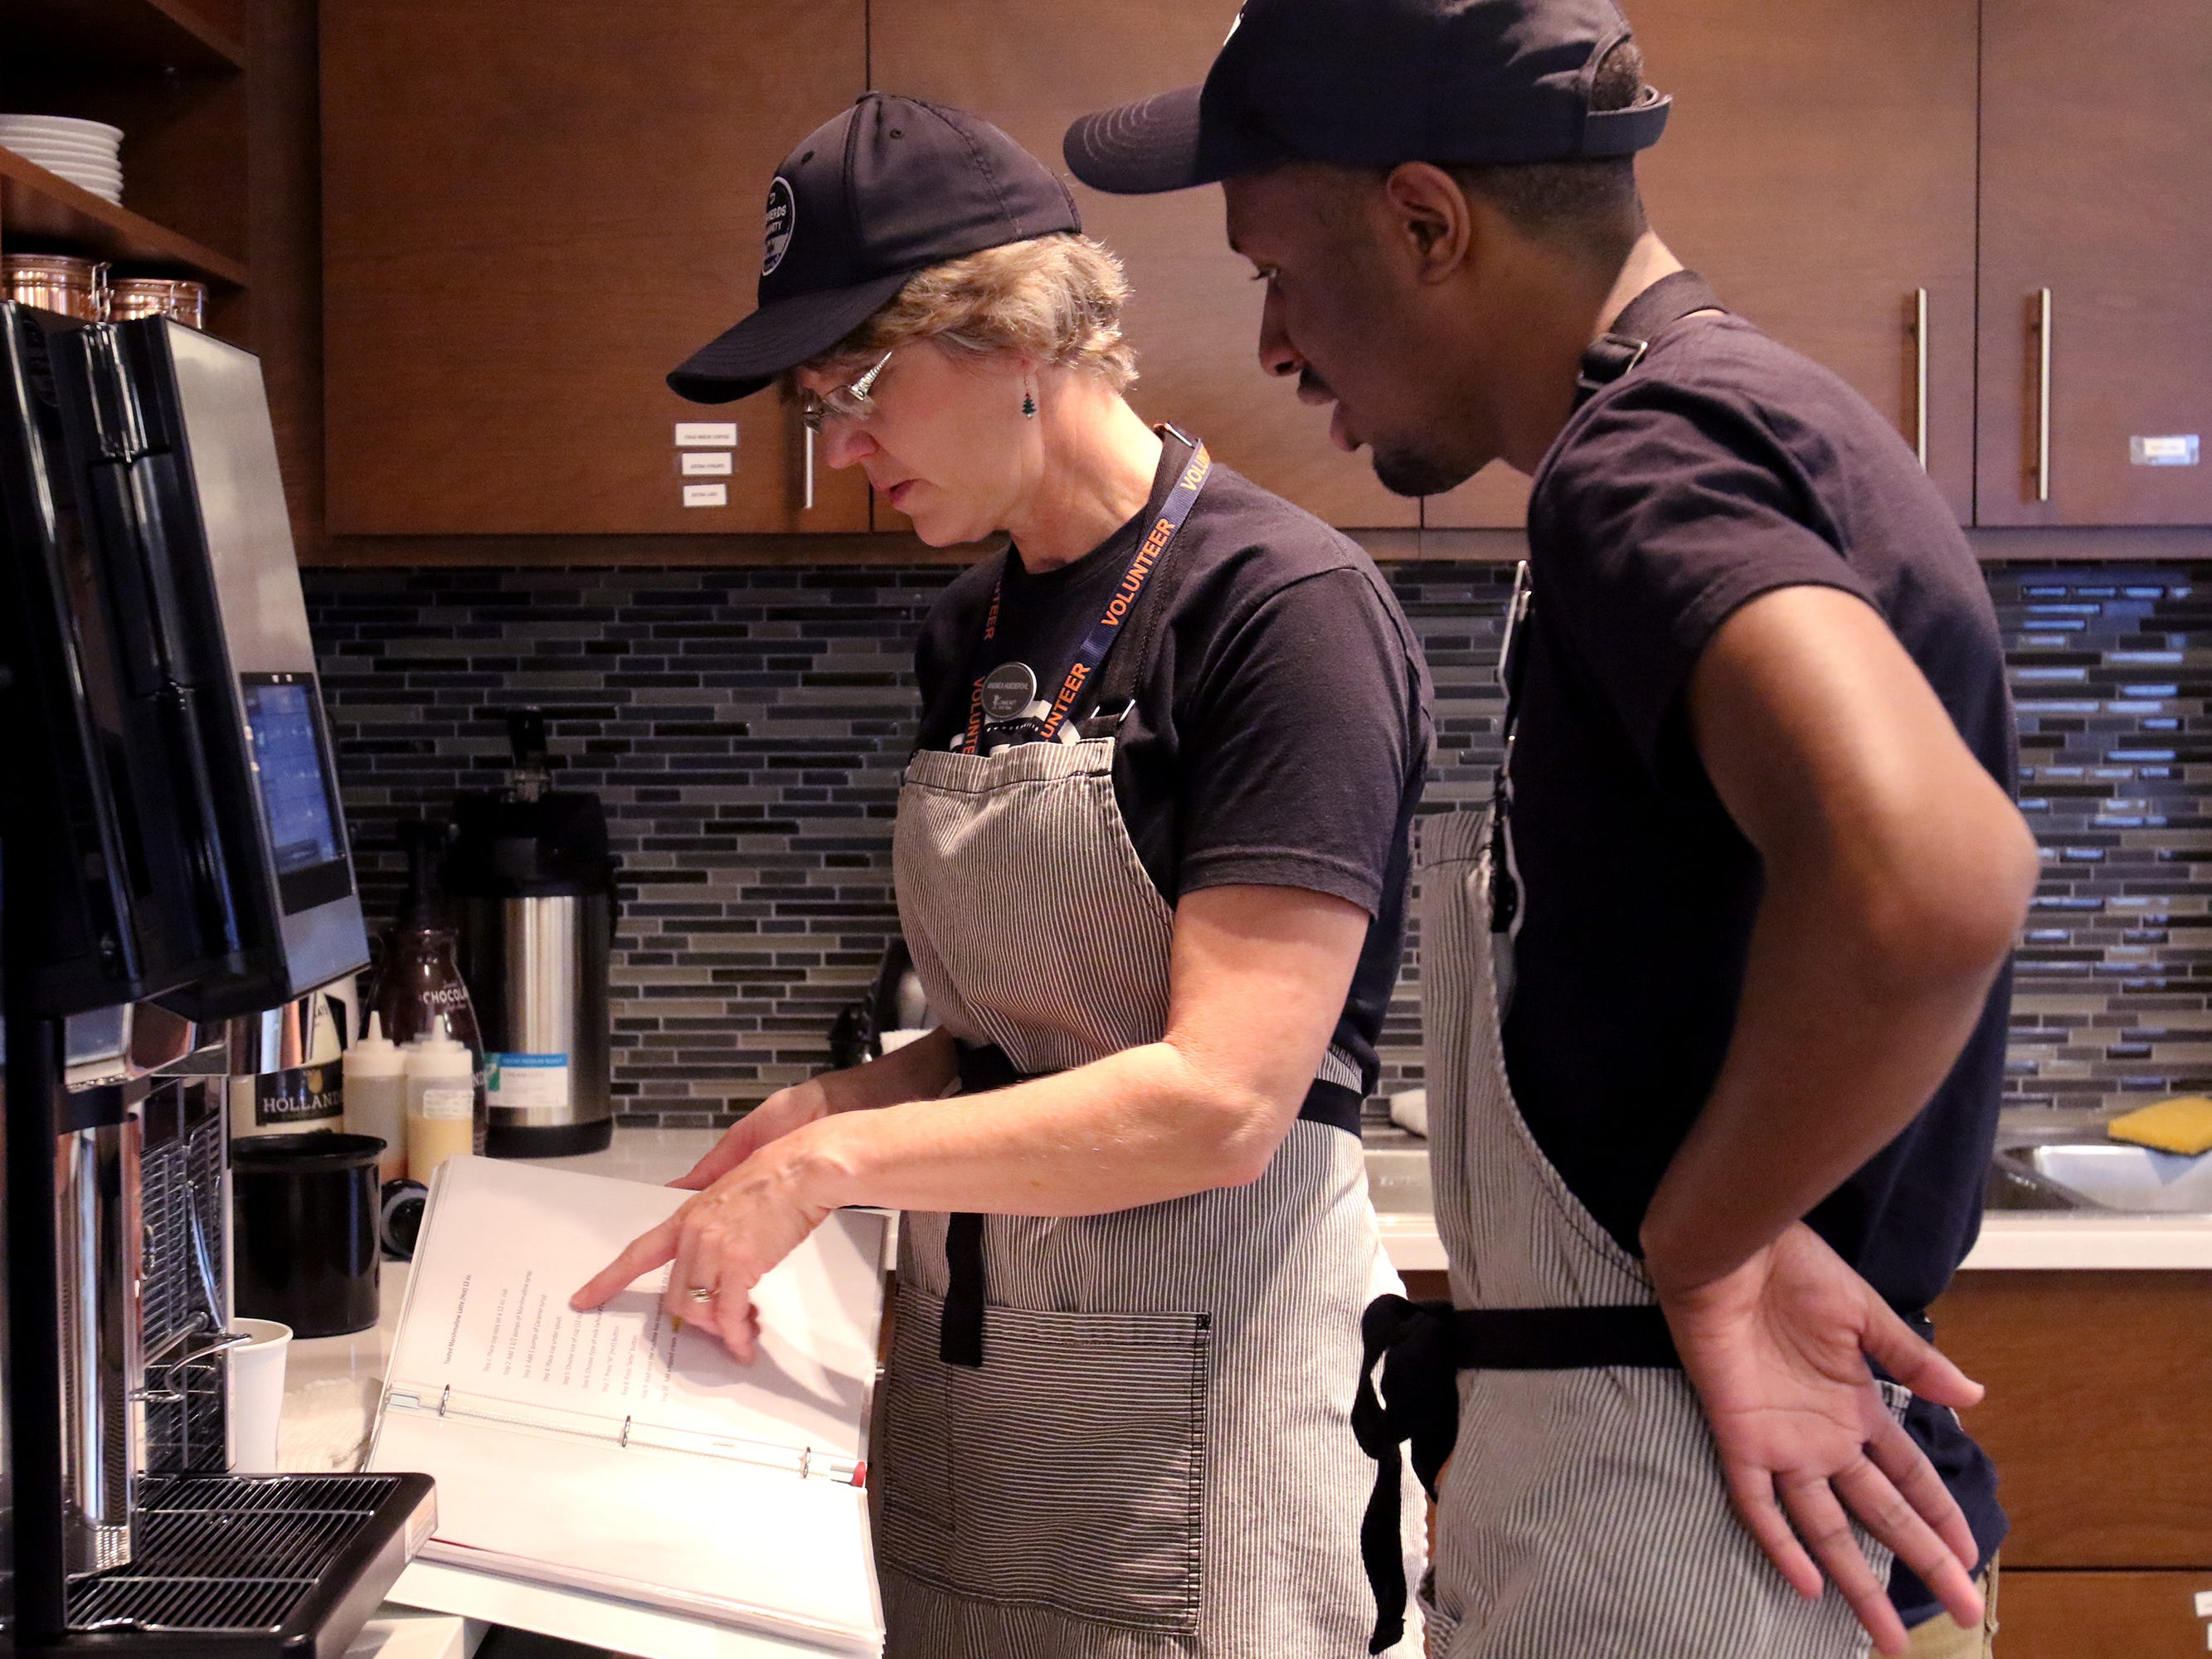 Volunteer Andrea Huedepuhl and Ben Page check the recipe for a customer's beverage order at Shepherds Community Cafe inside Community State Bank in Union Grove on Dec. 20.